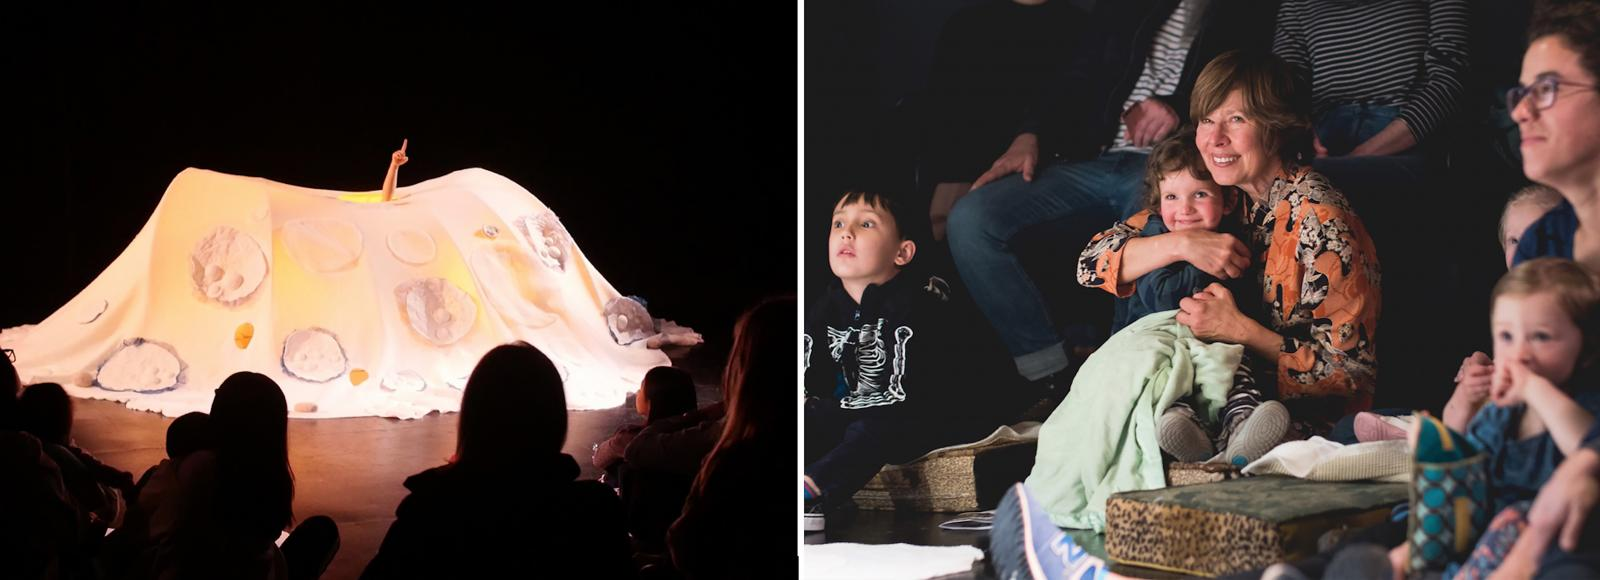 The left half of the image shows a glowing sculpture, covered in moon decals, with a child's hand extending from an opening at the top. The right half of the image shows two mothers and three toddlers in the audience watching with awe.